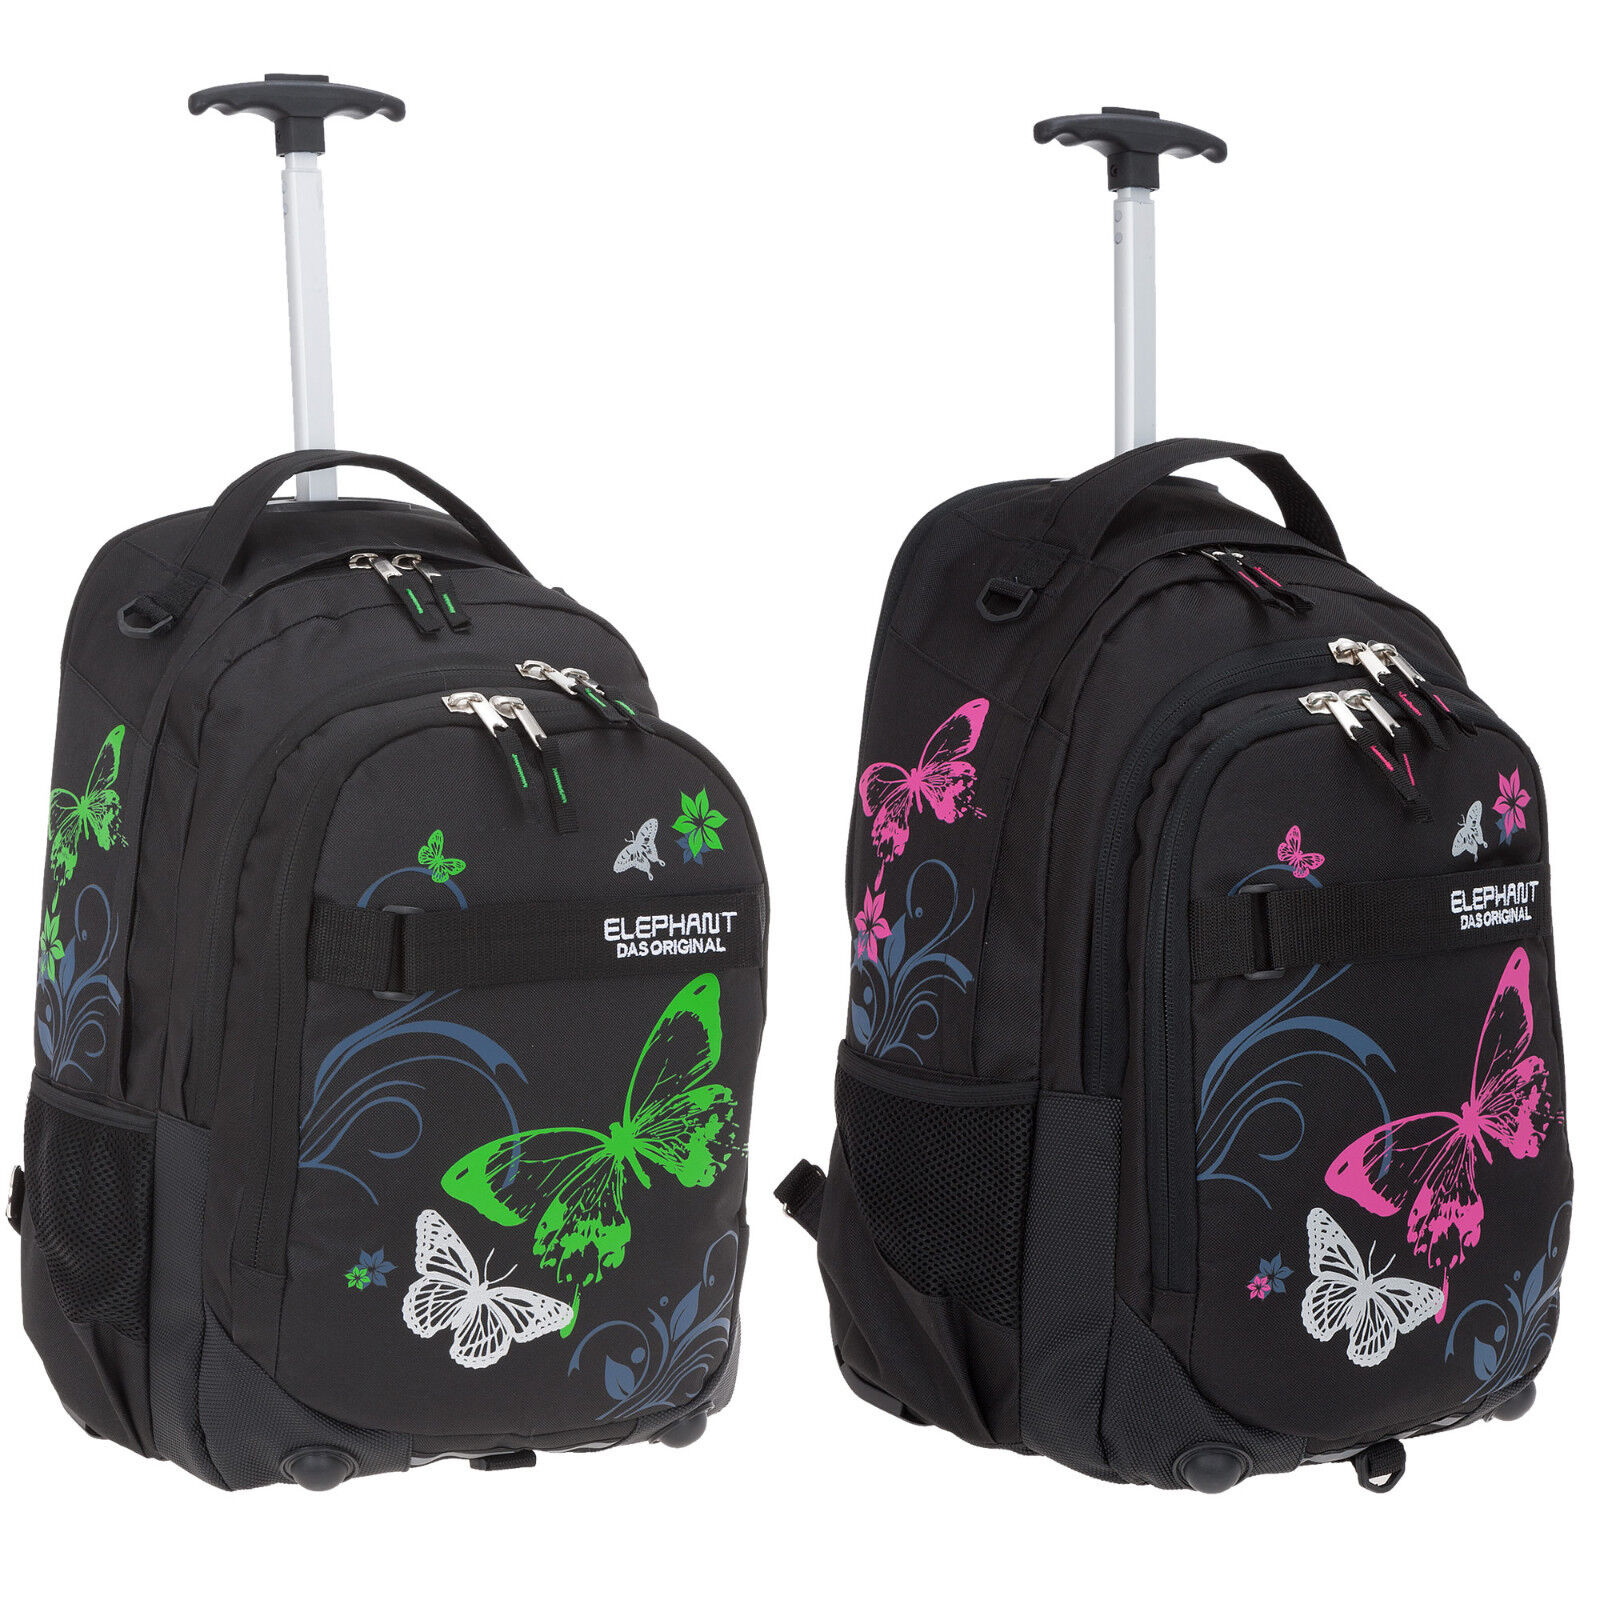 Trolley Elephant Hero Signature Schulrucksack Schultrolley 12680 Butterfly Wahl